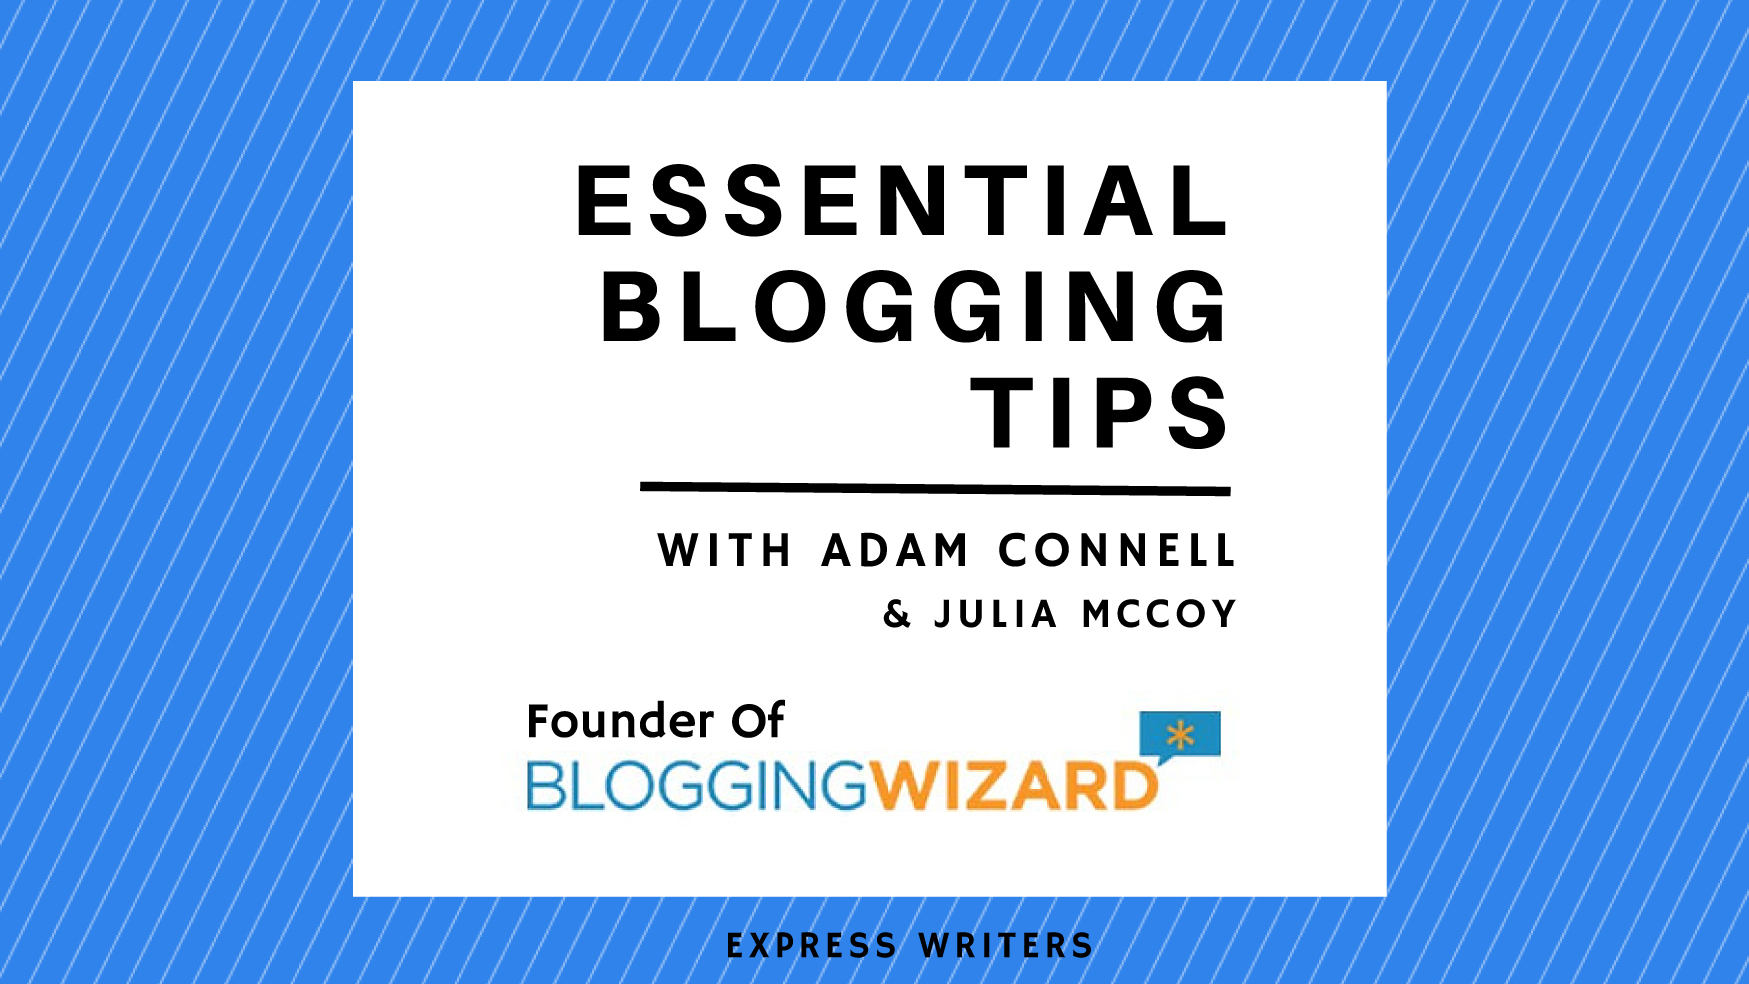 We promise... you're in for some awesome blogging advice!